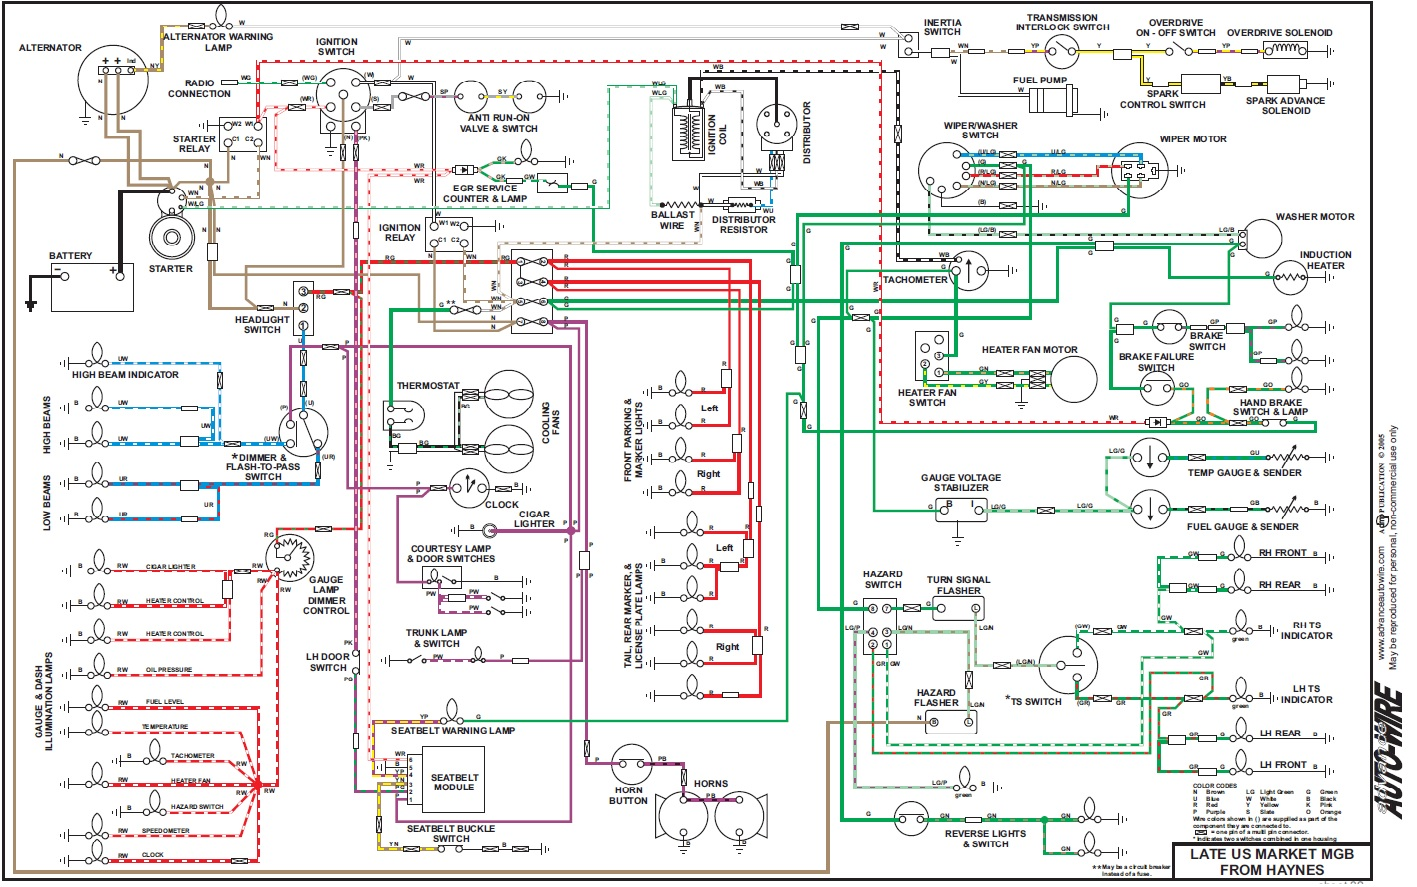 1979 mgb wiring diagram for headlights 38 wiring diagram 1977 mgb ignition wiring diagram 1977 mgb [ 1417 x 887 Pixel ]